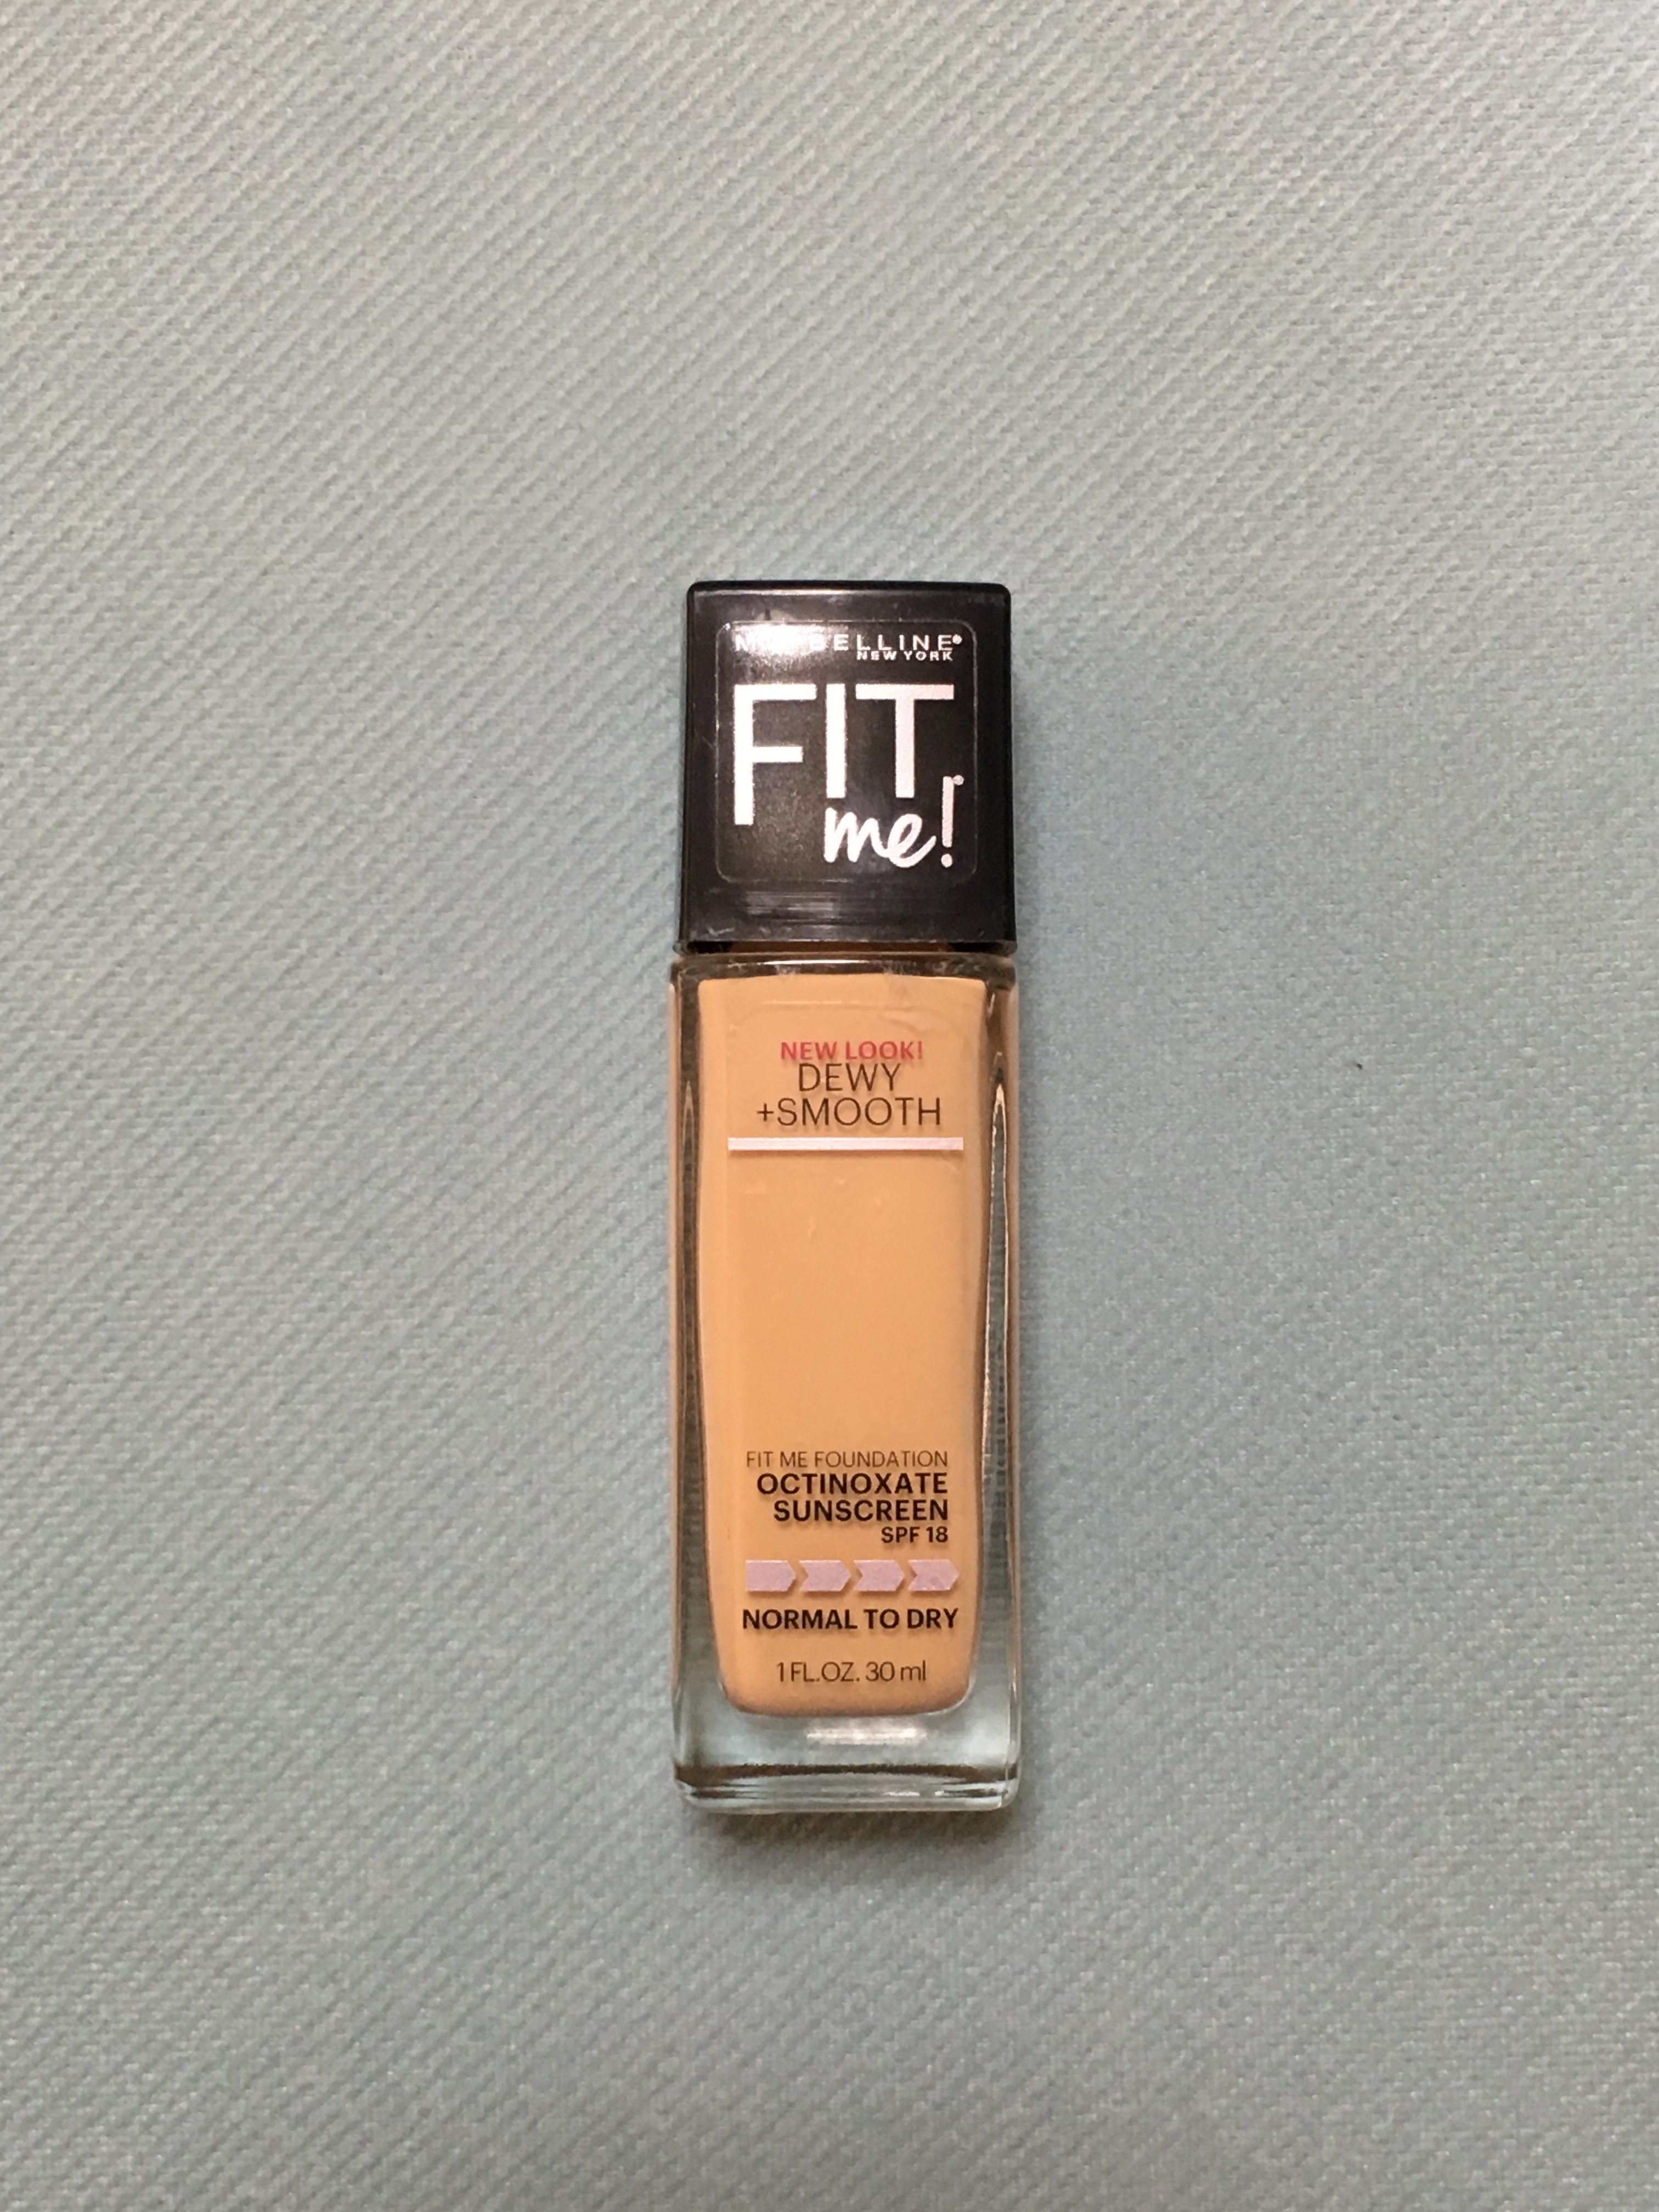 GET-THE-LOOK-FOUNDATION-1